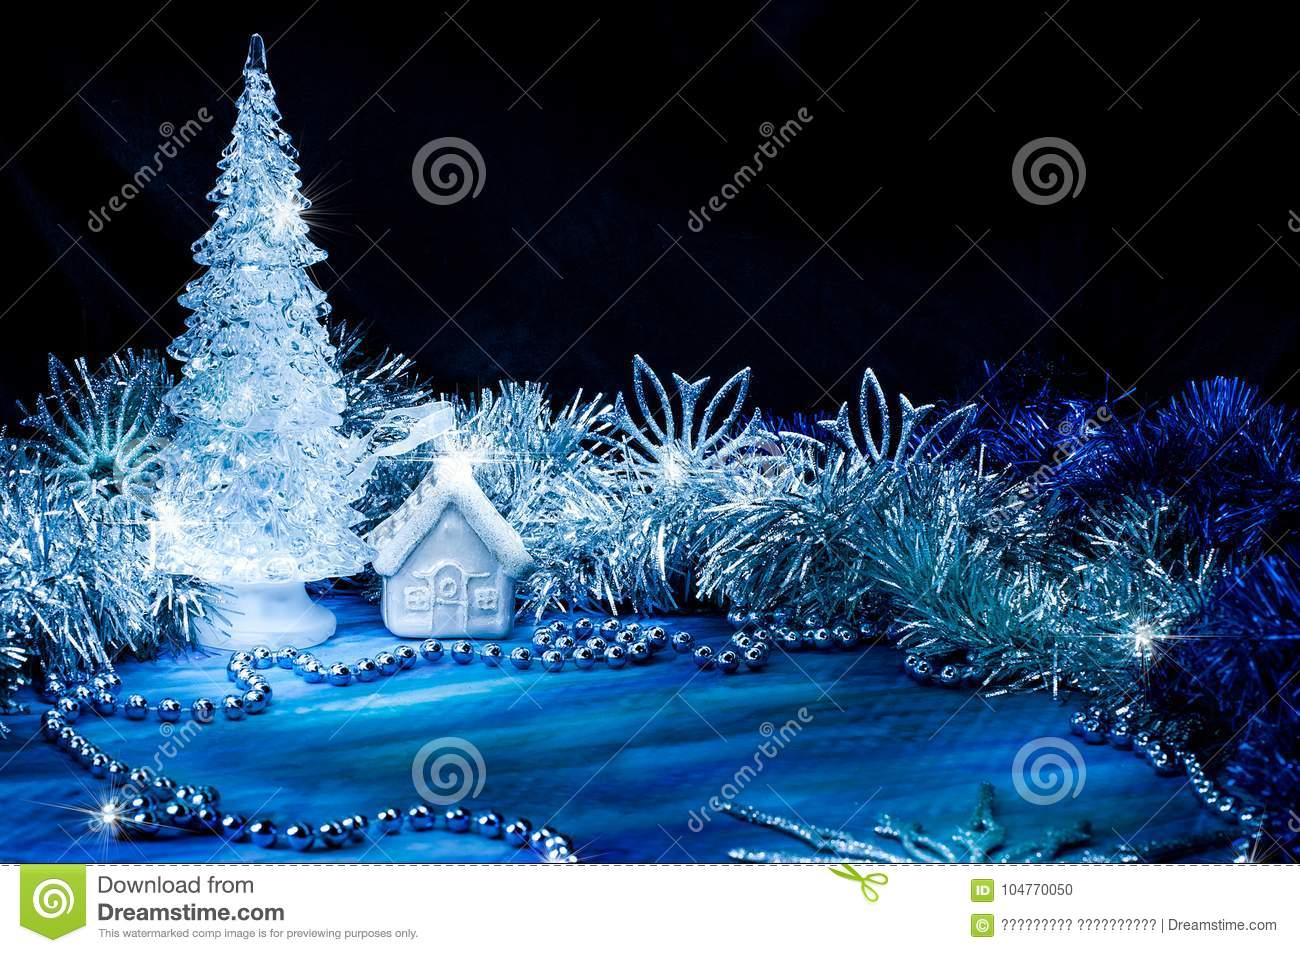 Icy Christmas Tree Glowing With Silver Light On A Blue Background Stock Photo Image Of Card December 104770050